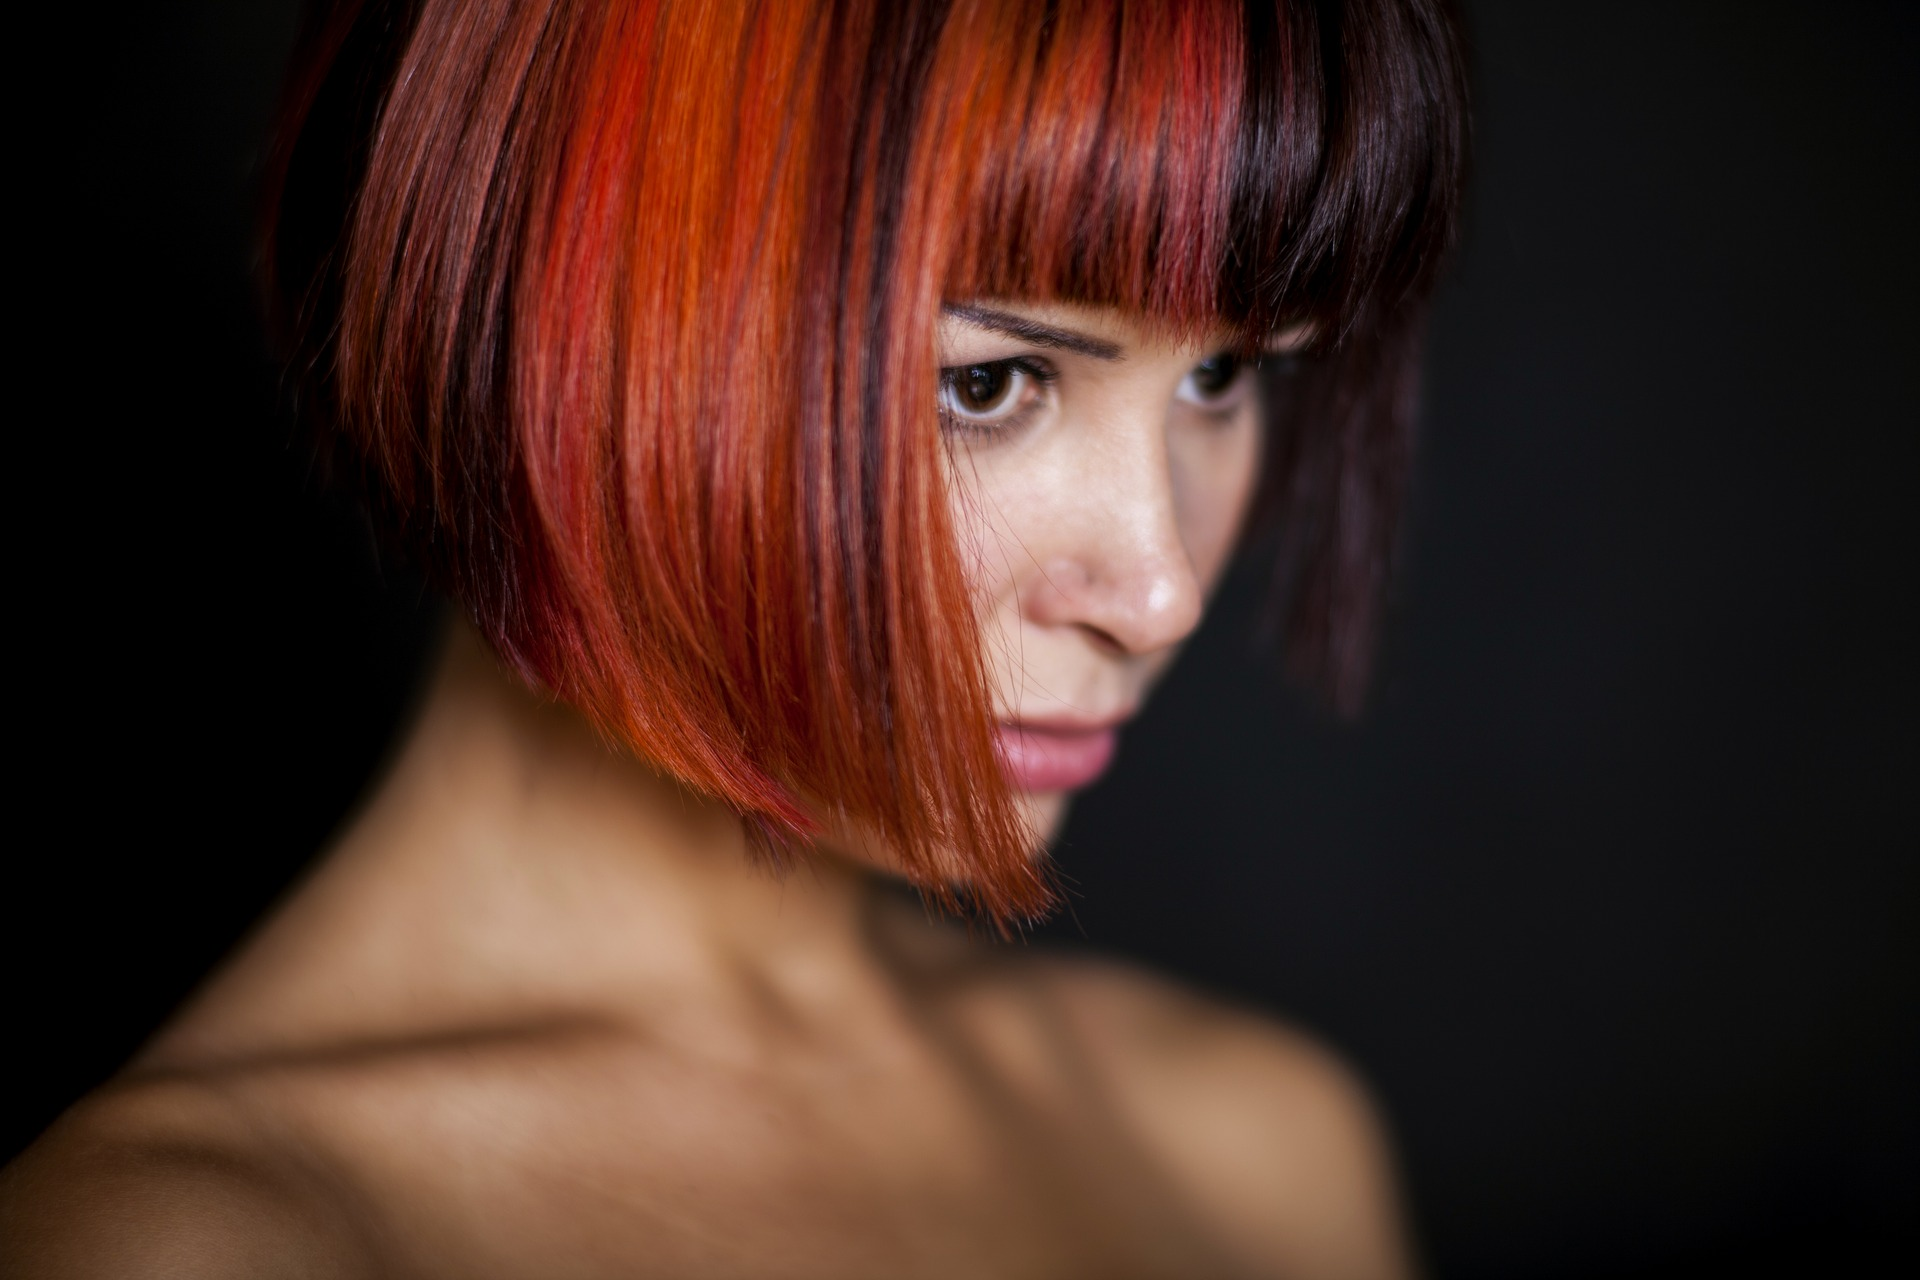 Report: Professional Color Care Gains Momentum Amidst COVID-19 Chaos